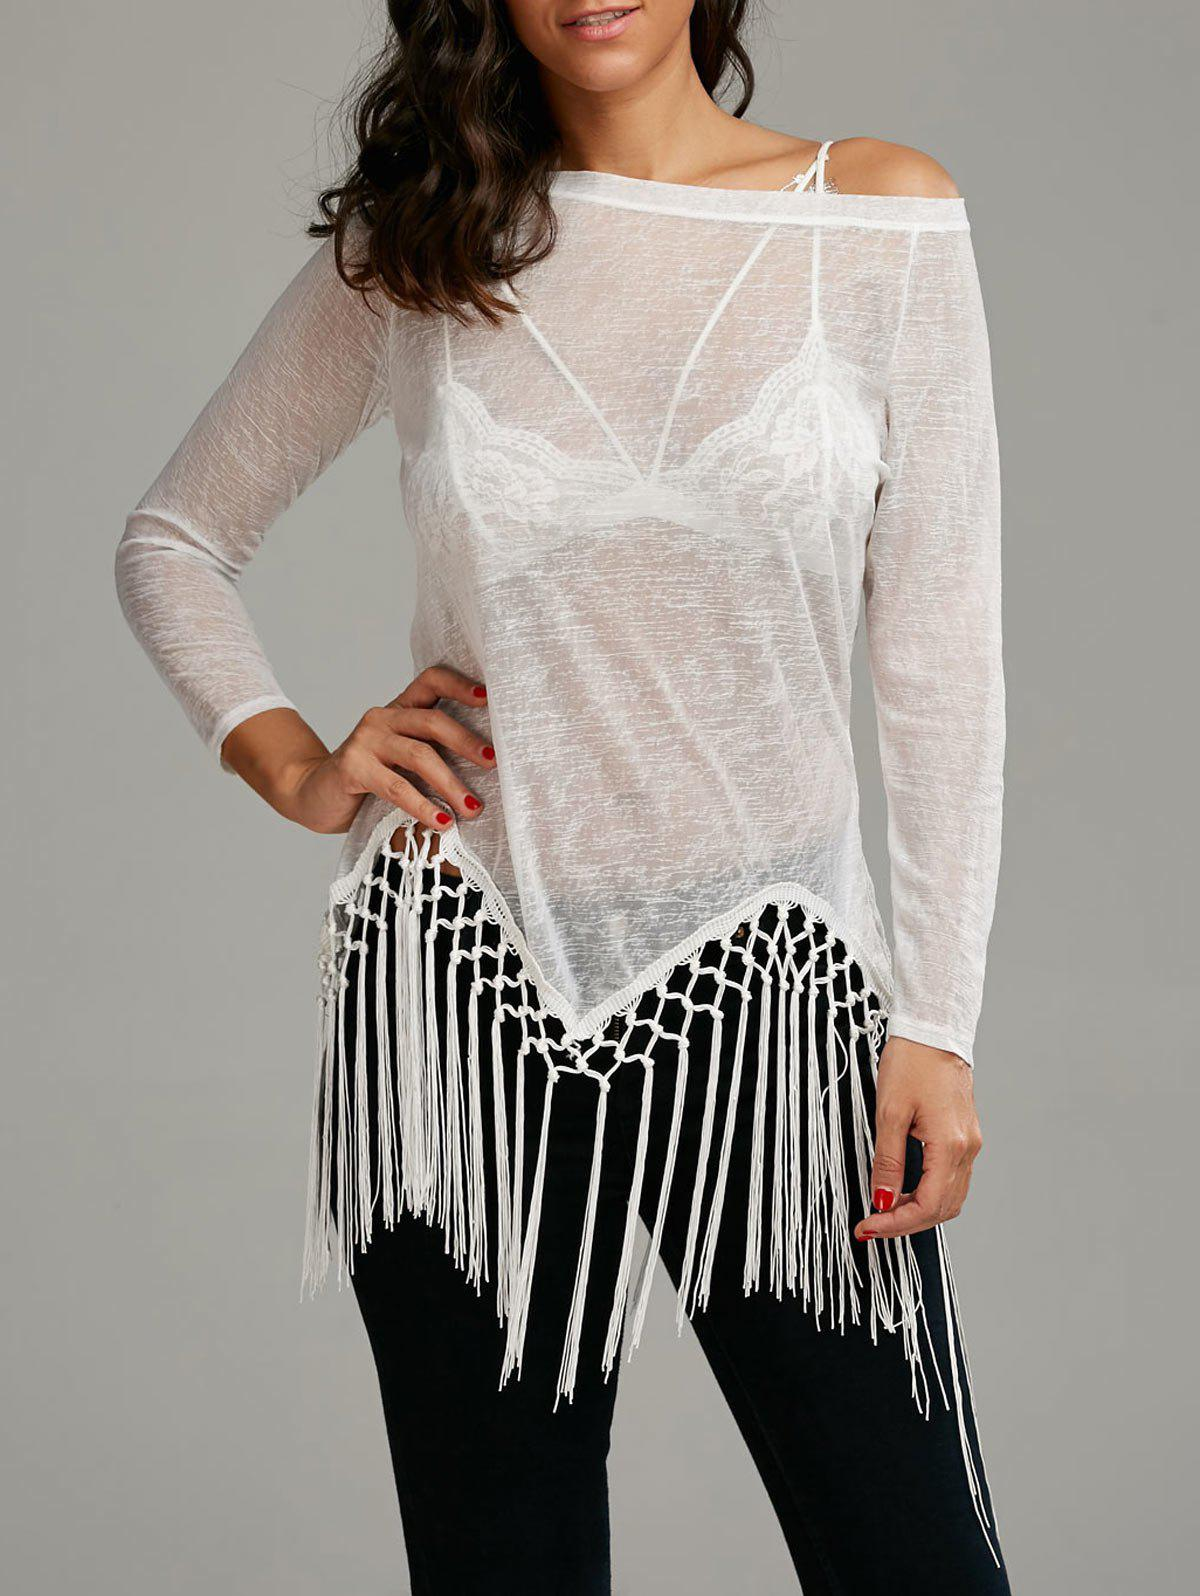 Skew Neck See Through Fringed Top - WHITE S